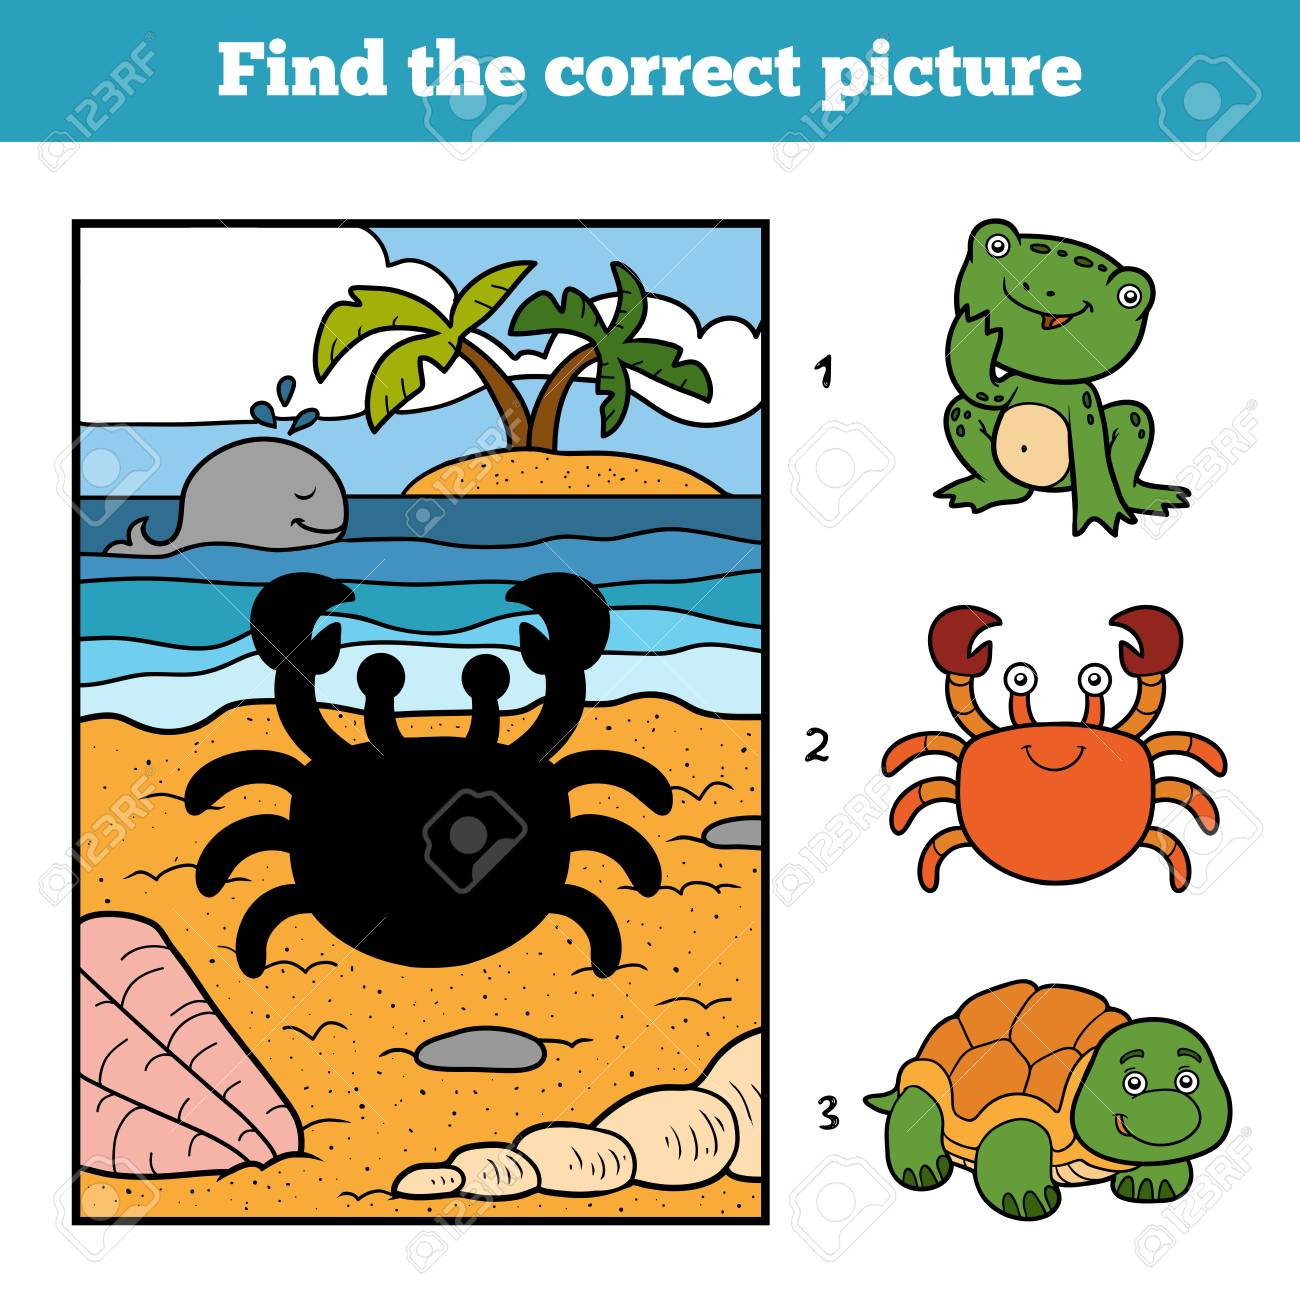 Find the correct picture, education game for children. Little crab and background - 62153898